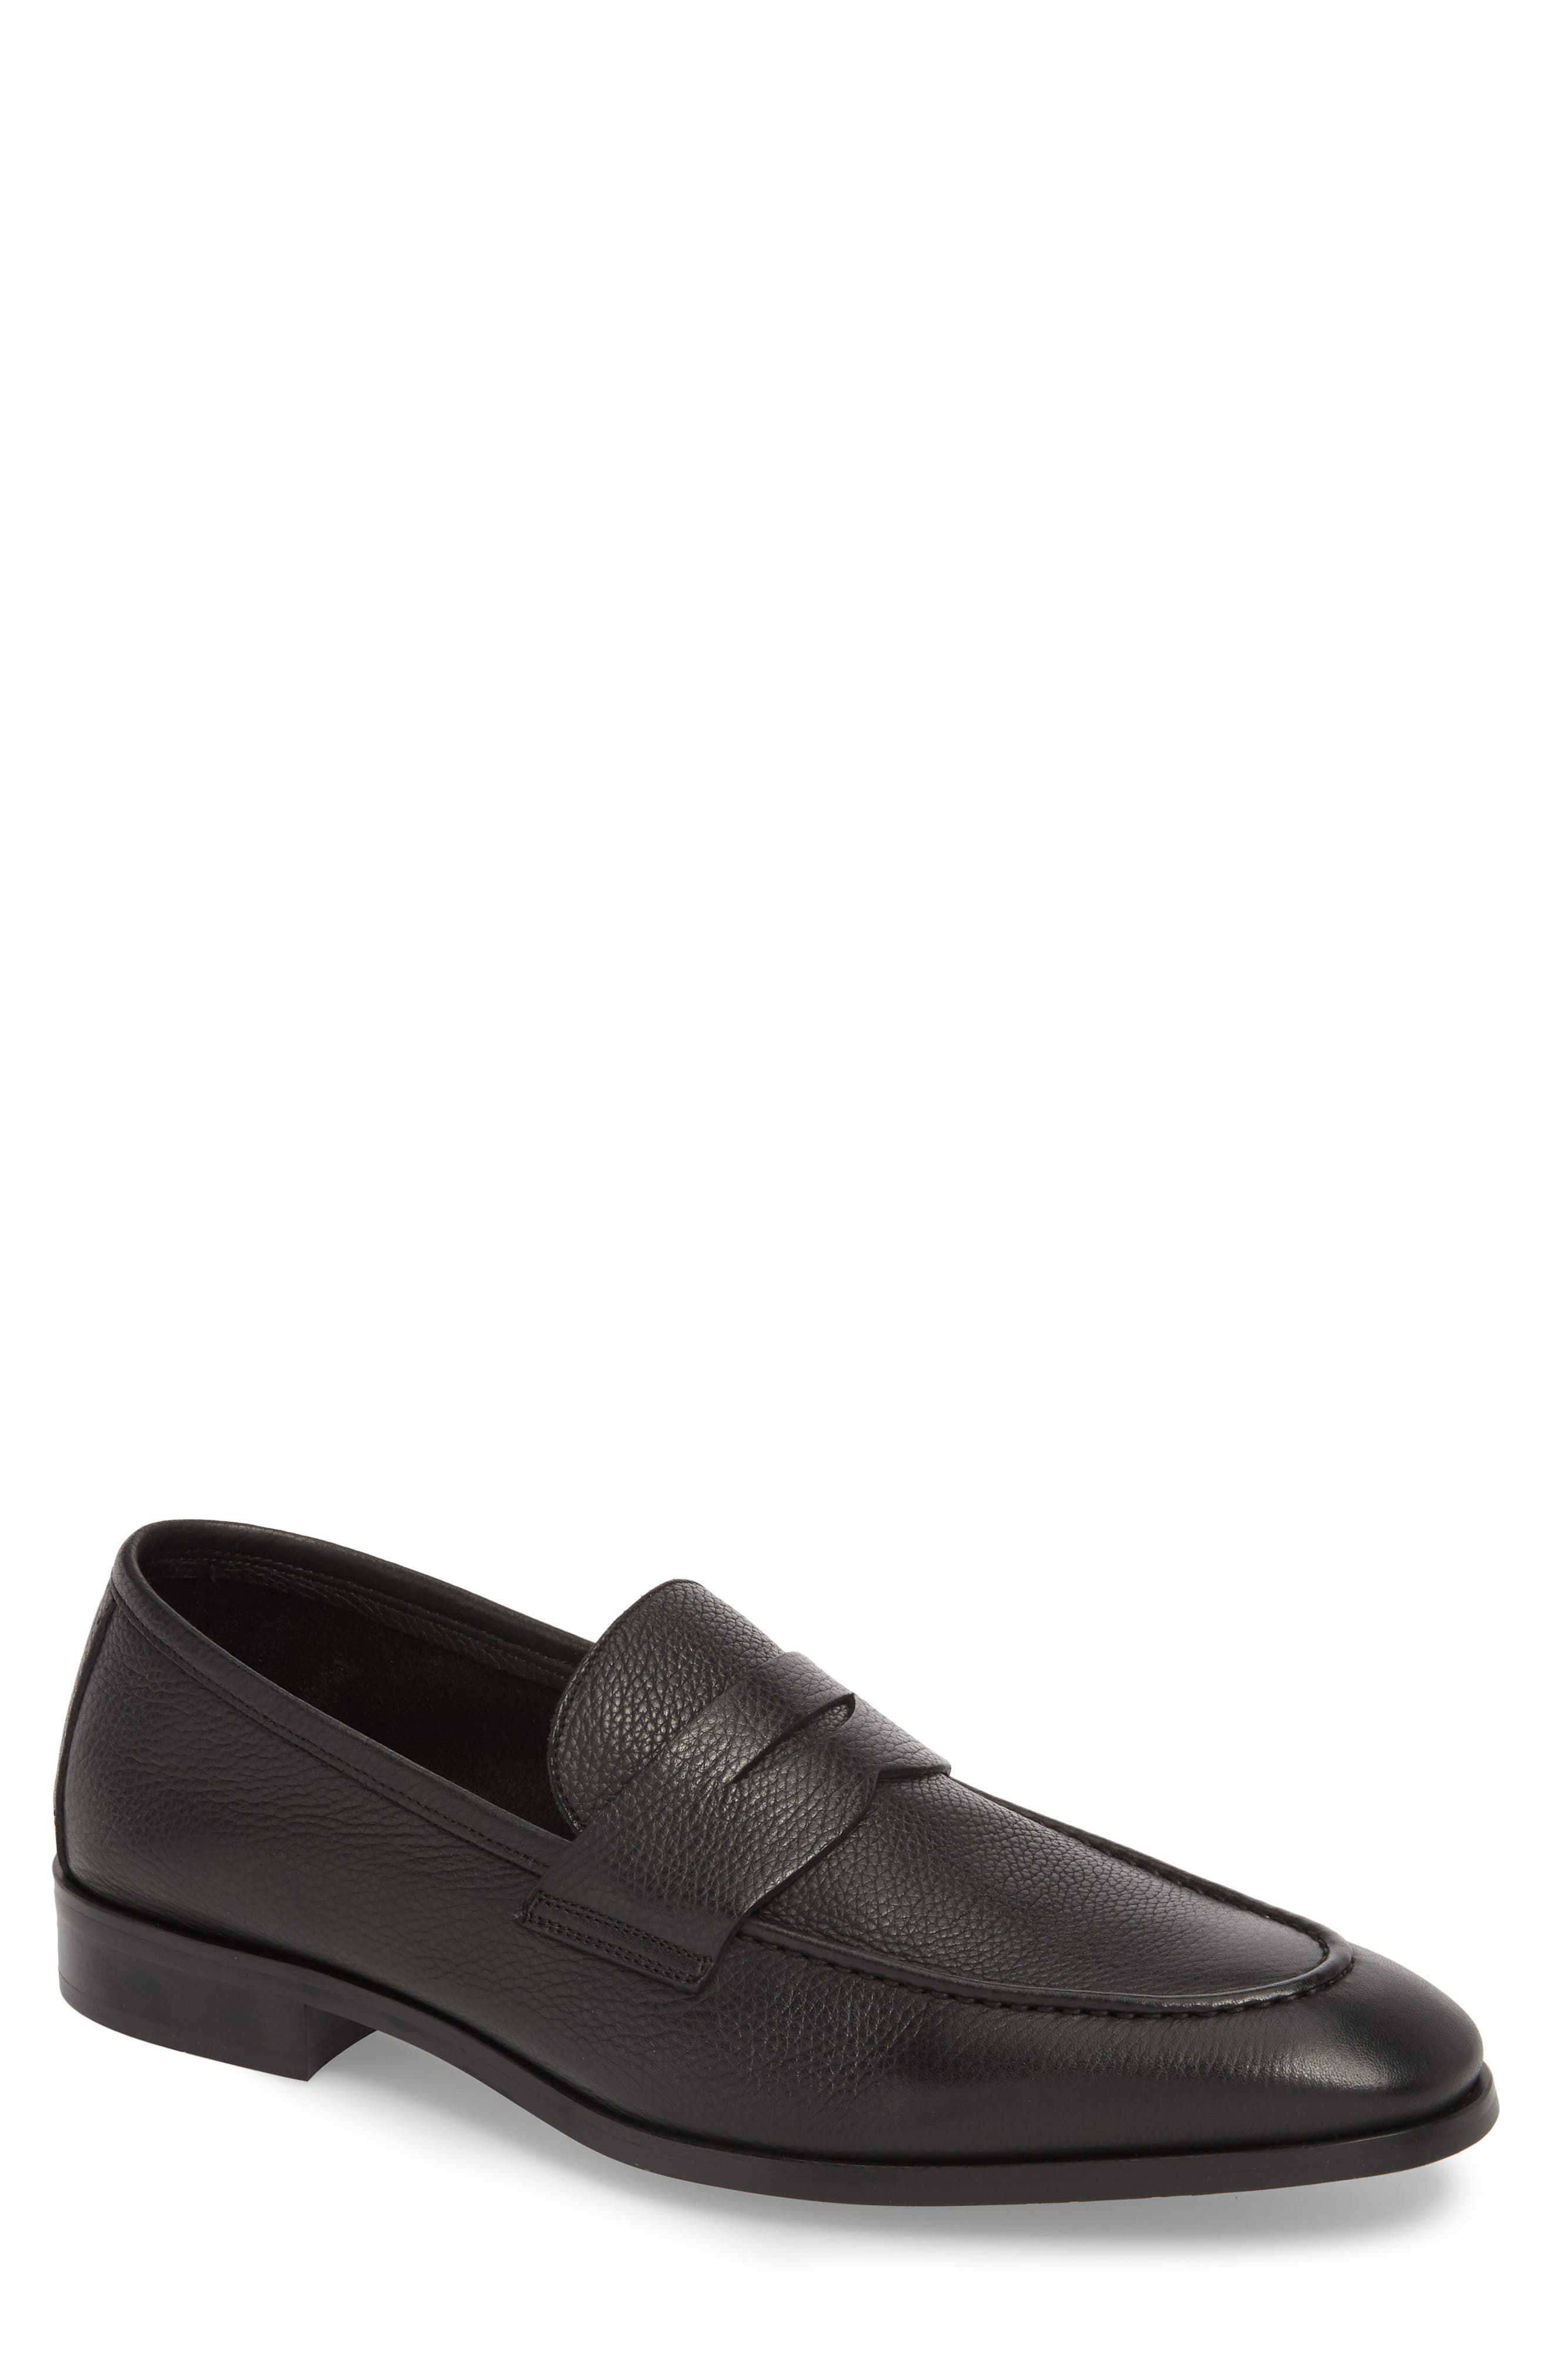 To Boot New York Johnson Penny Loafer, Black